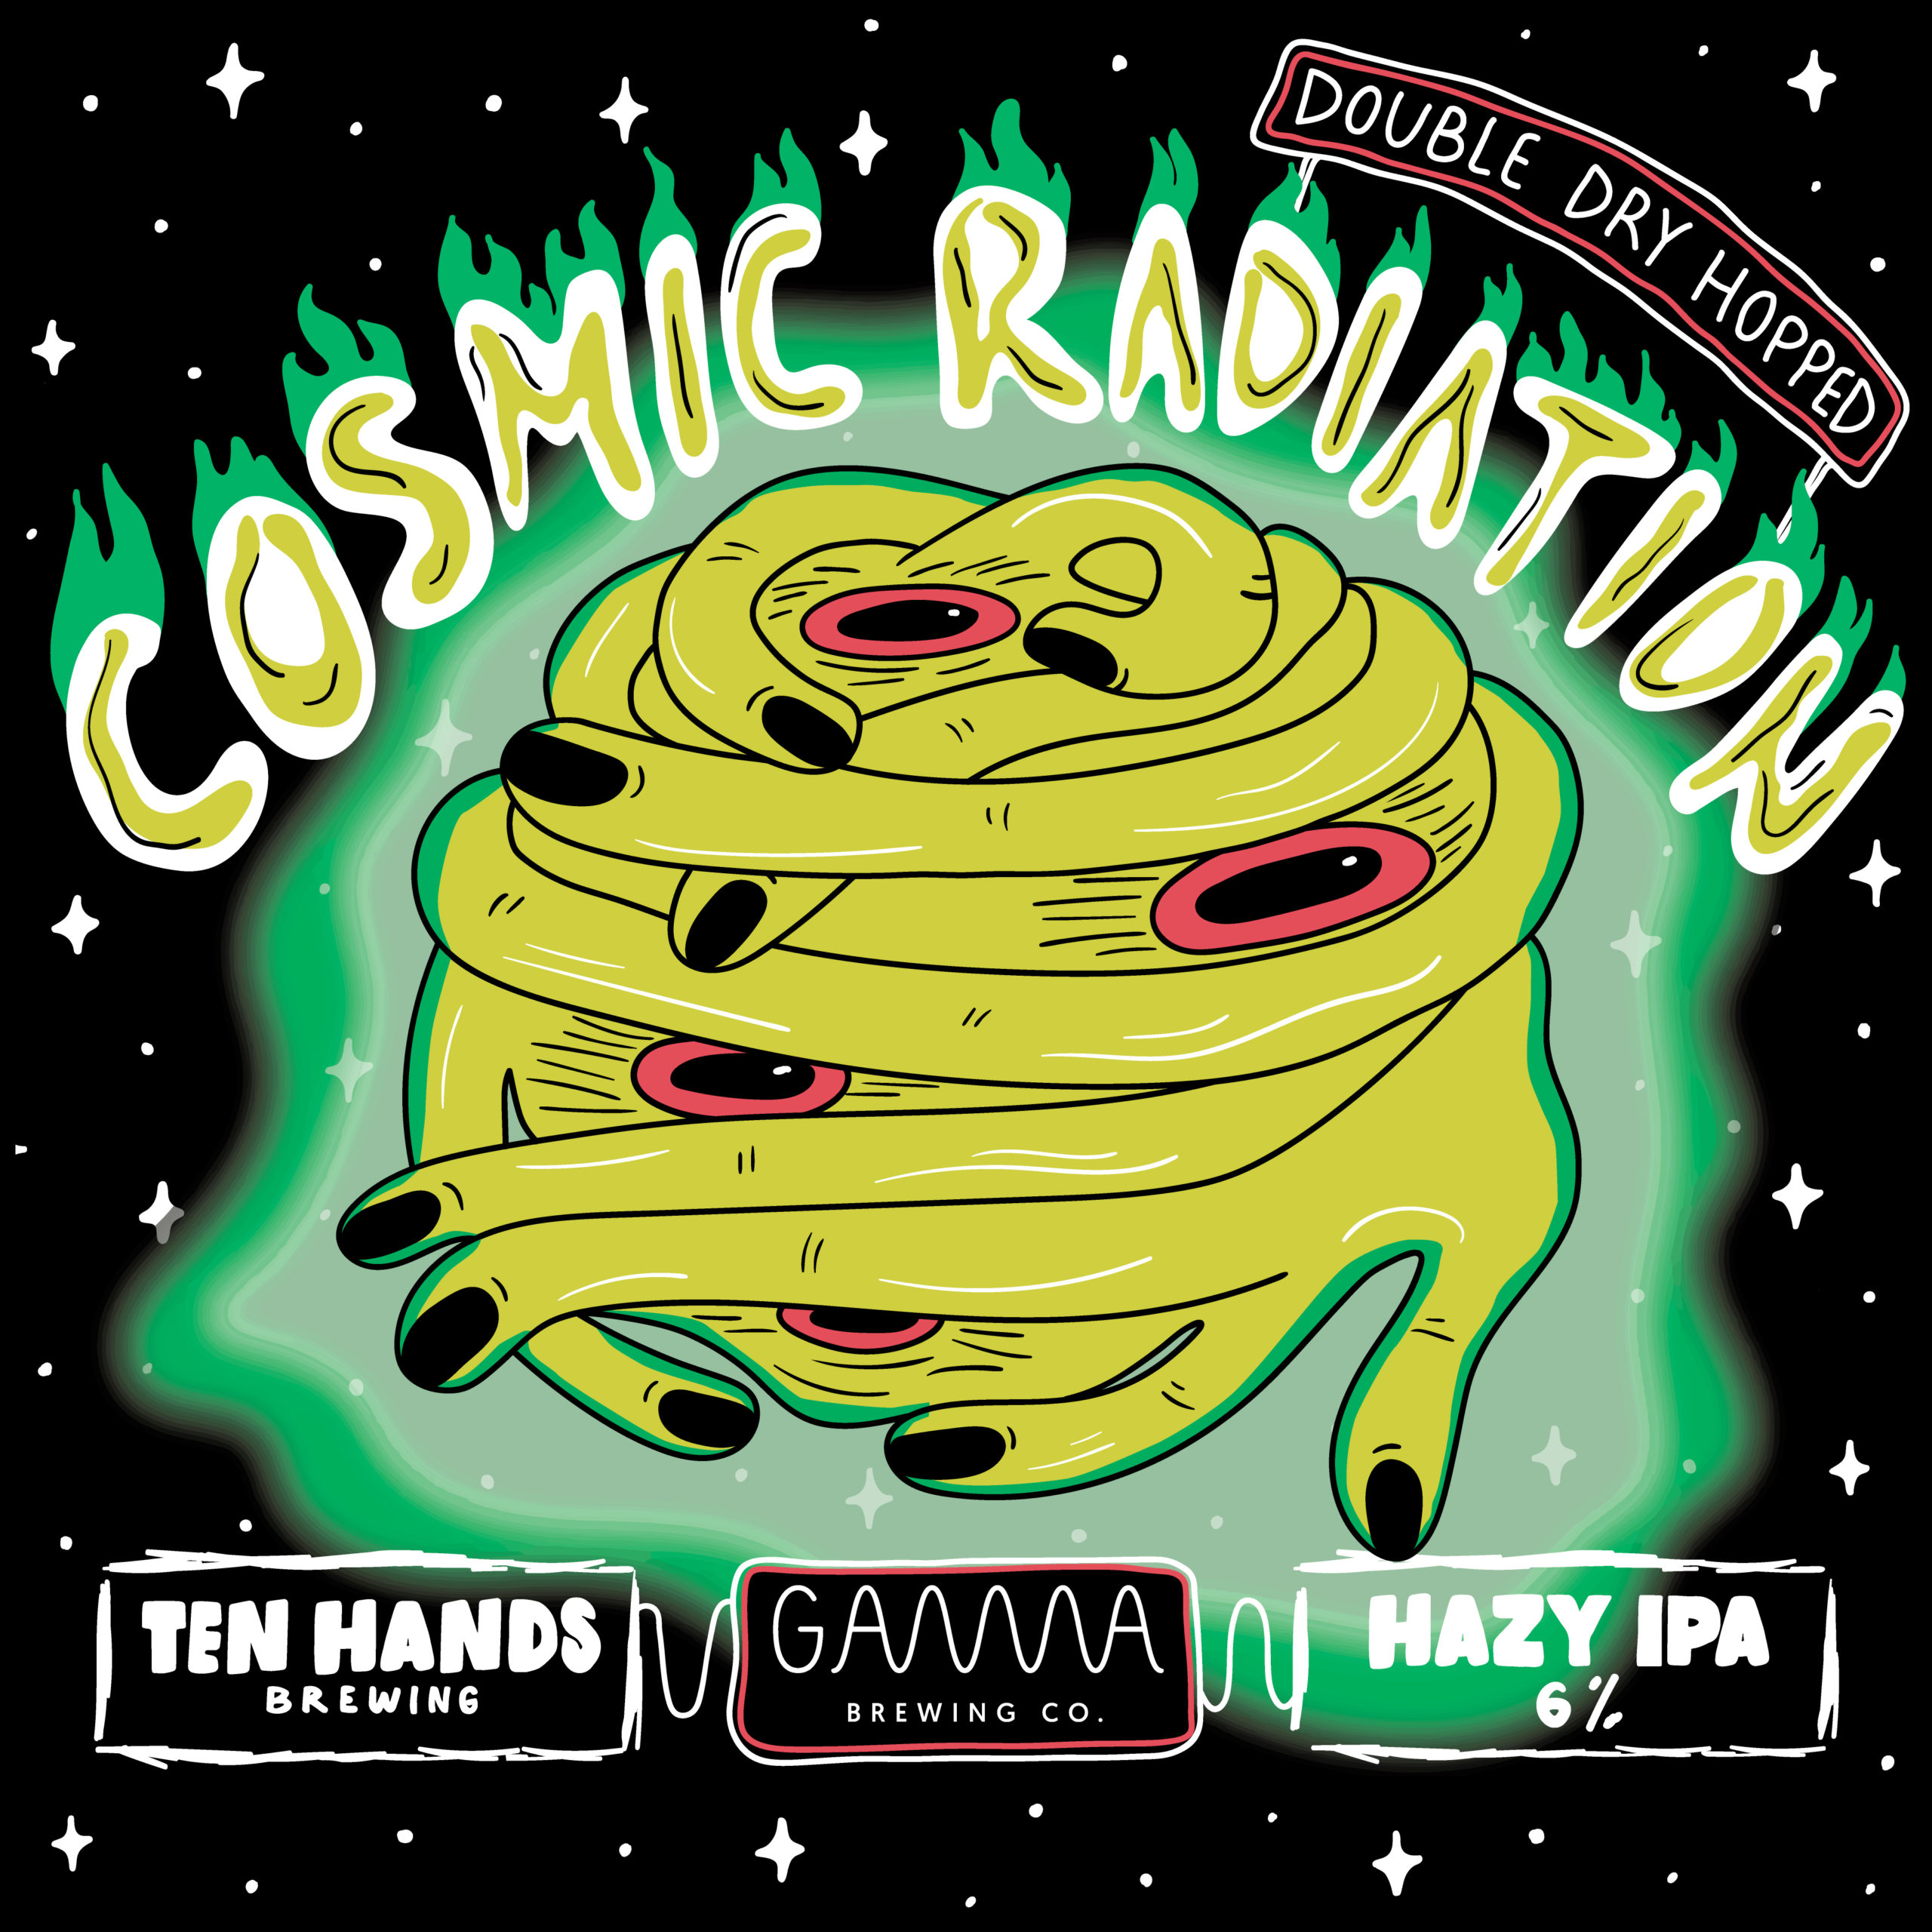 Double Dry Hopped Cosmic Radiation